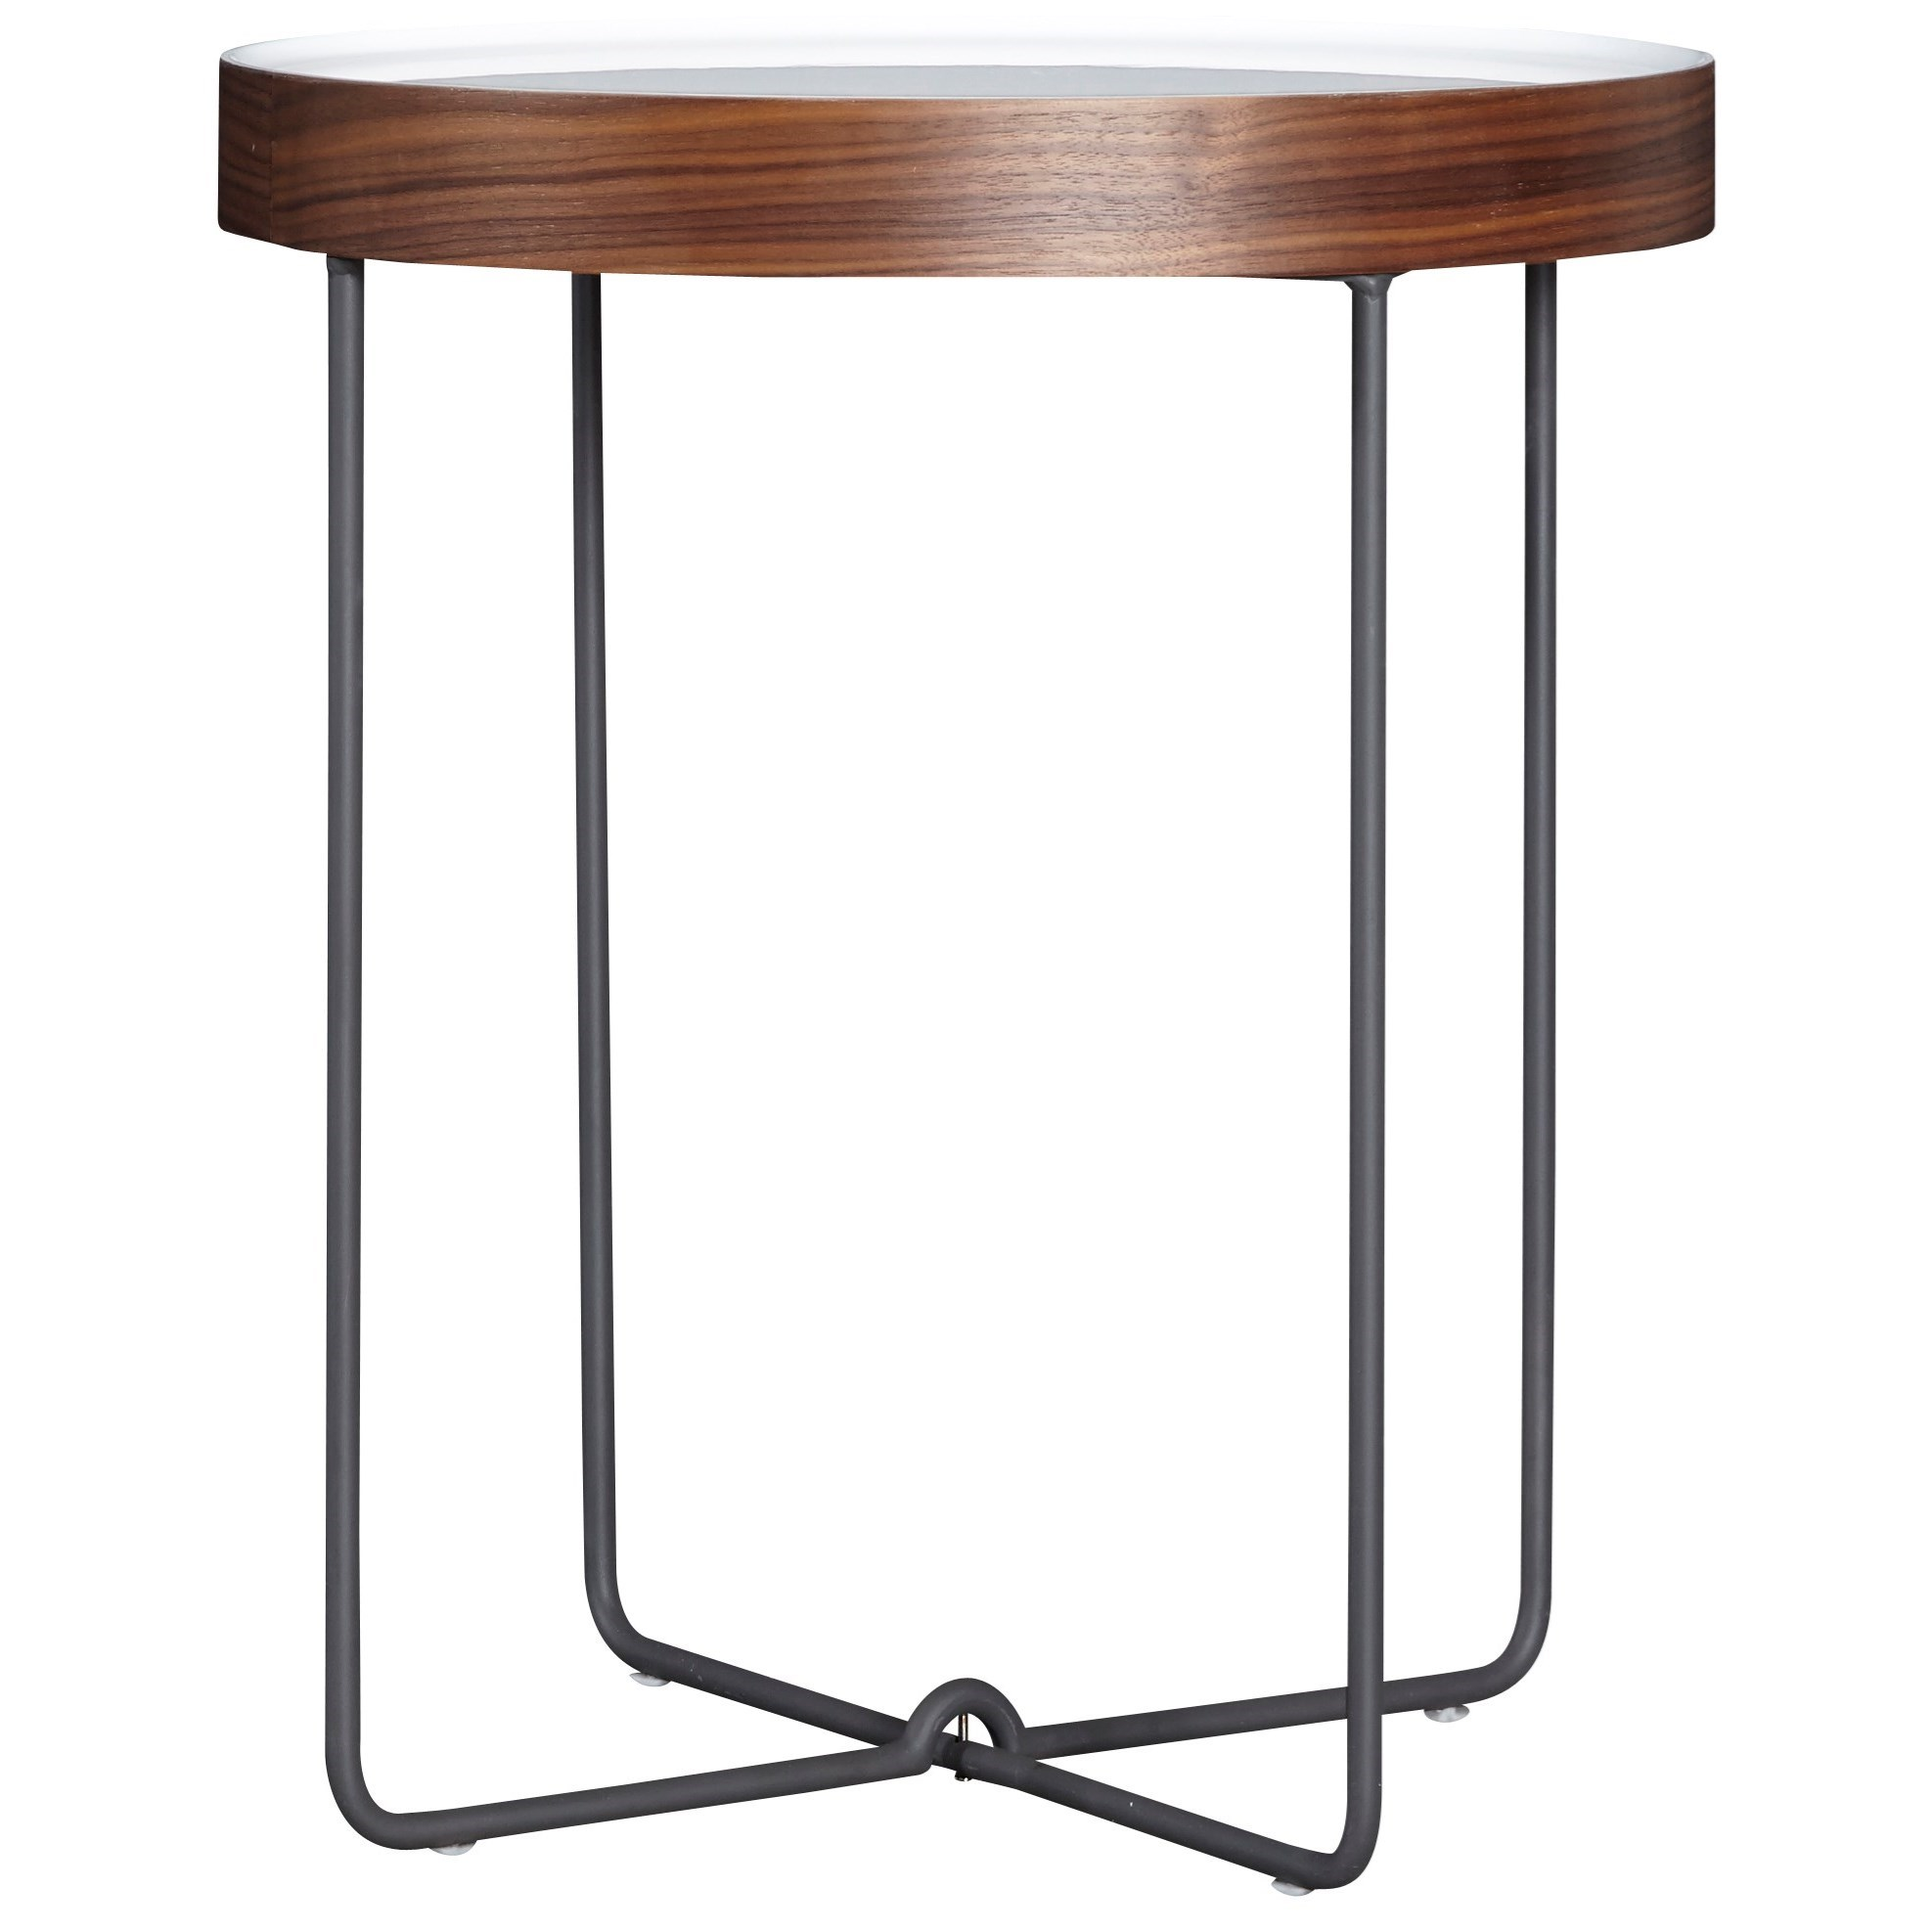 874 Natalie End Table by Casana at Corner Furniture